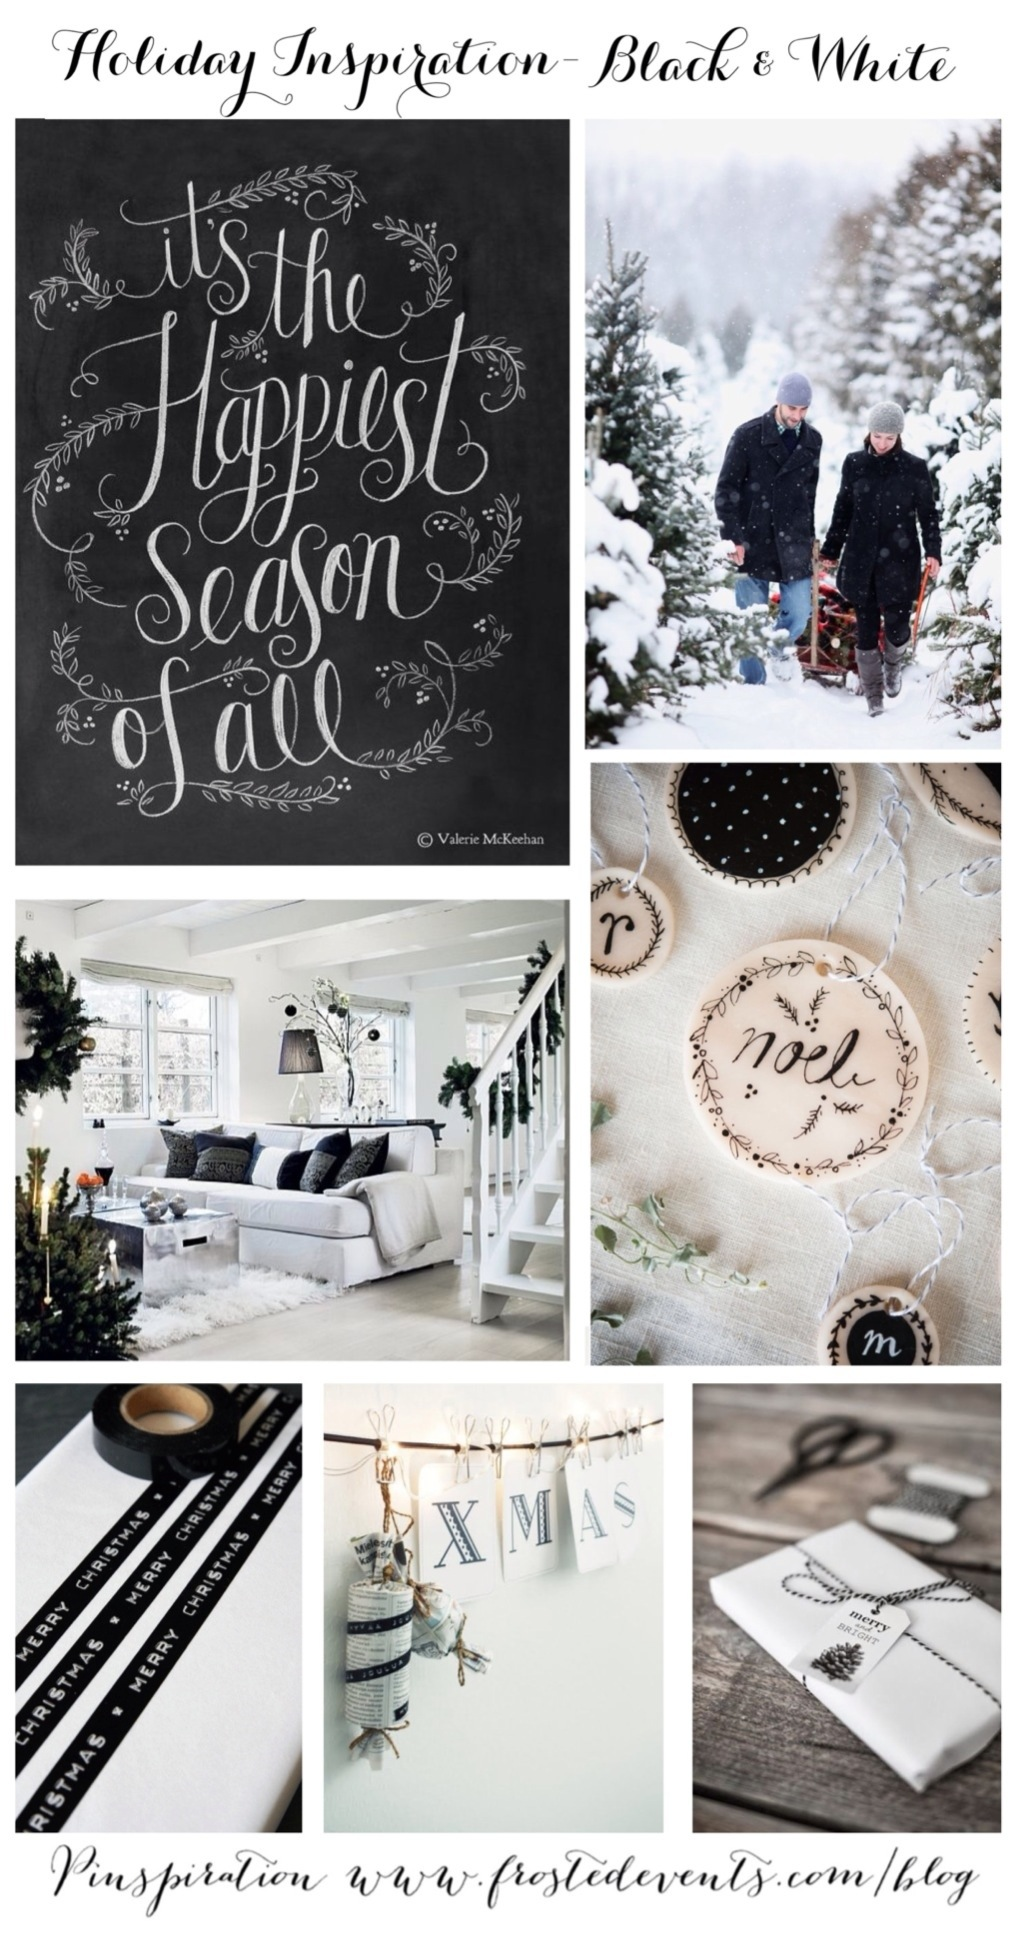 Christmas Decorations - Ideas for Holiday Inspiration Black and White